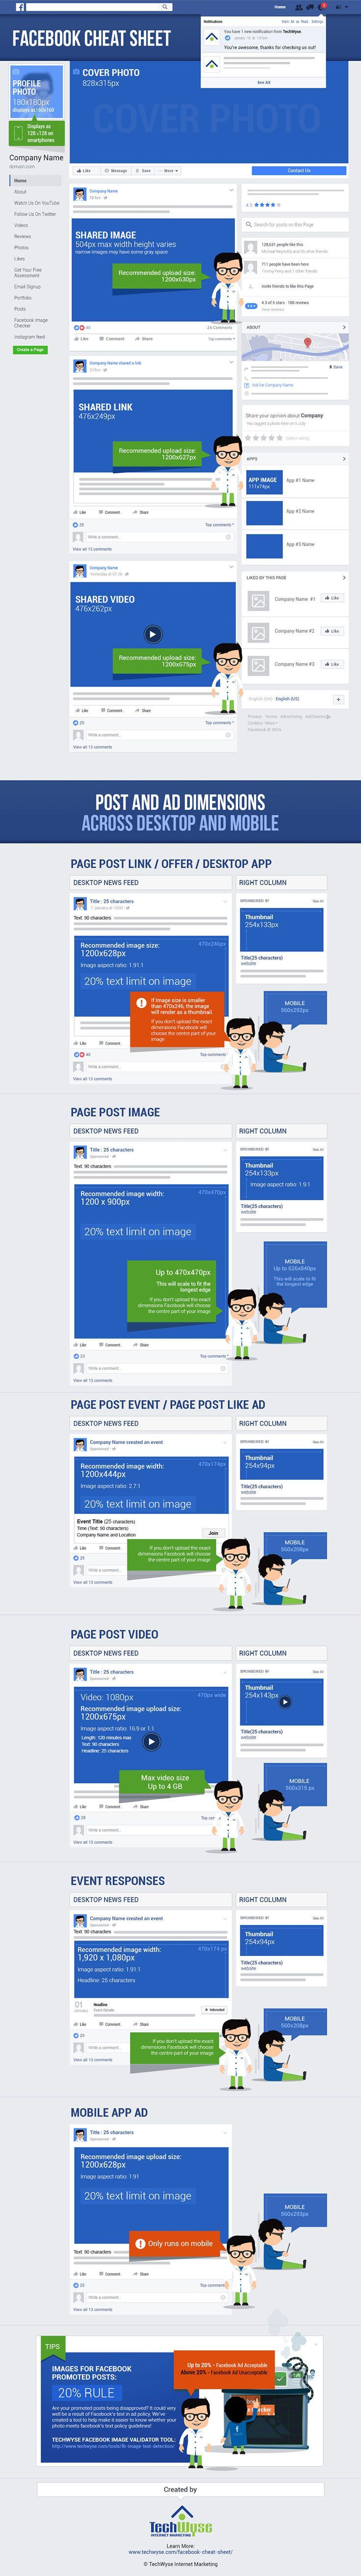 Facebook image sizes 2016: Get ALL the right sizes on this infographic! Includes Facebook cover photo and Facebook ad sizes. Updated October 2016. More info on the blog.